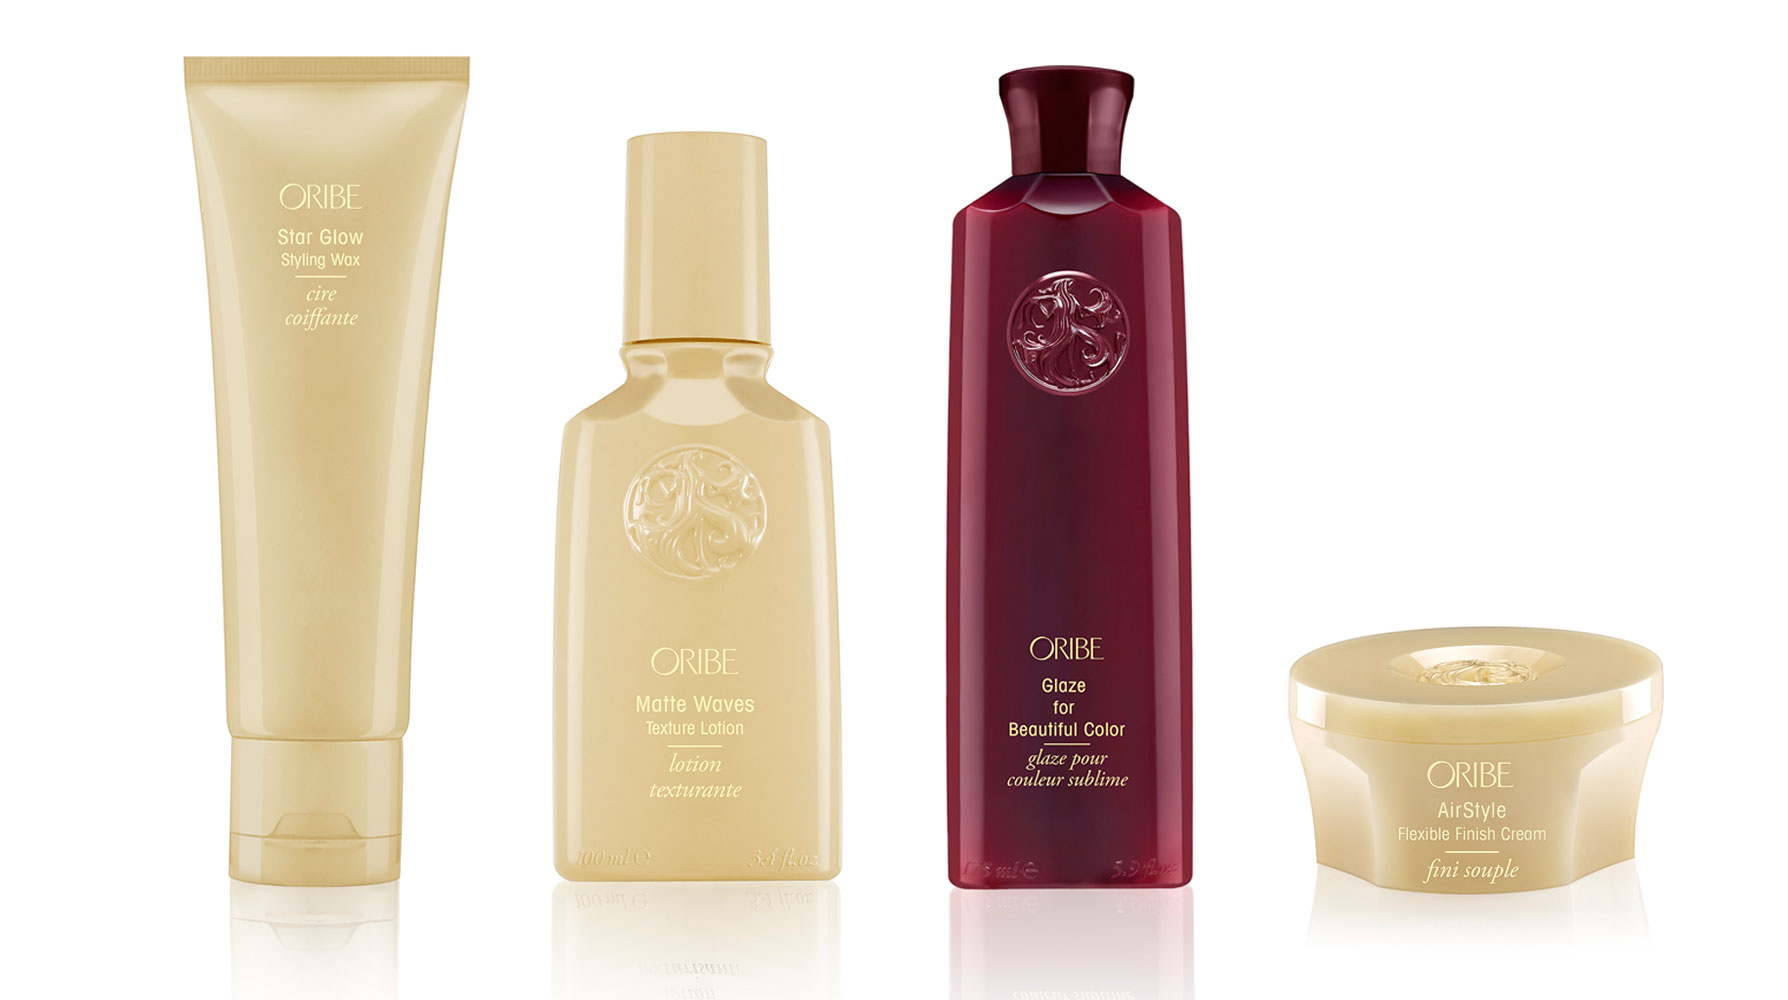 Oribe Announces 4 New Products for Spring